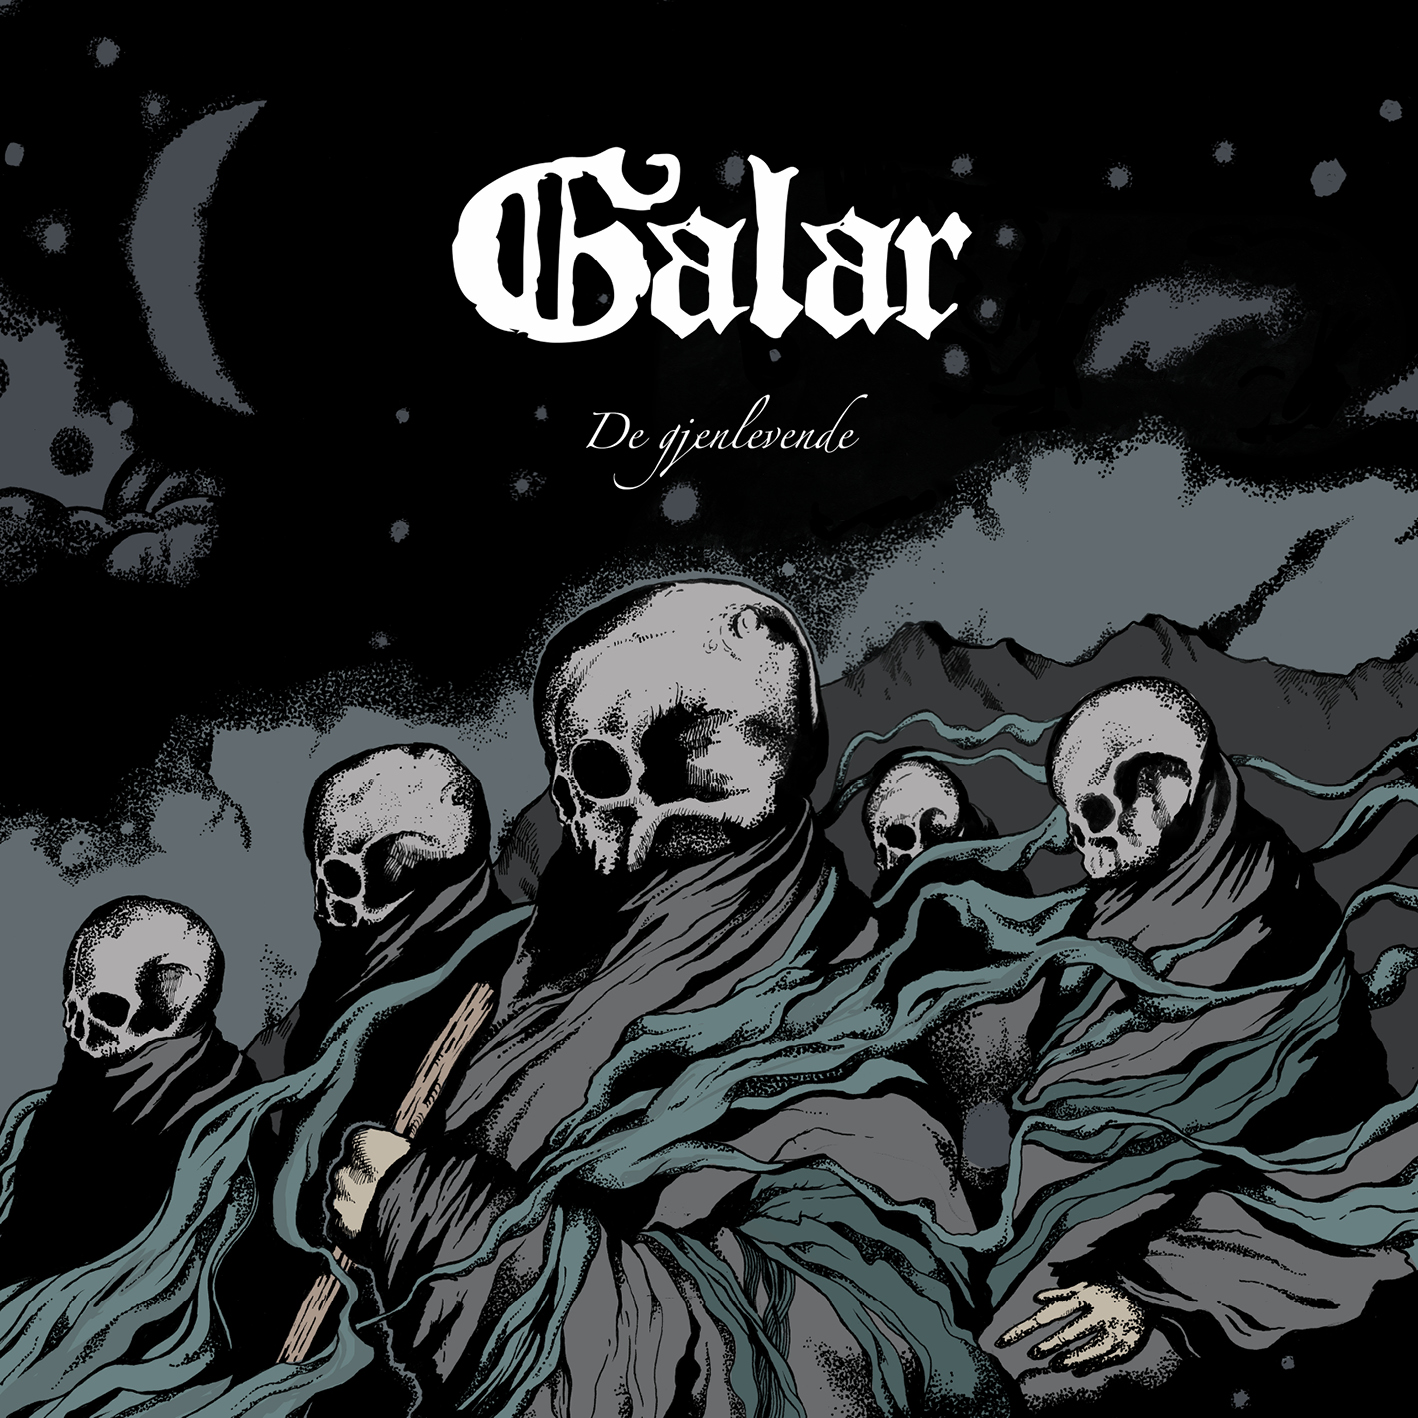 Galar – De gjenlevende Review